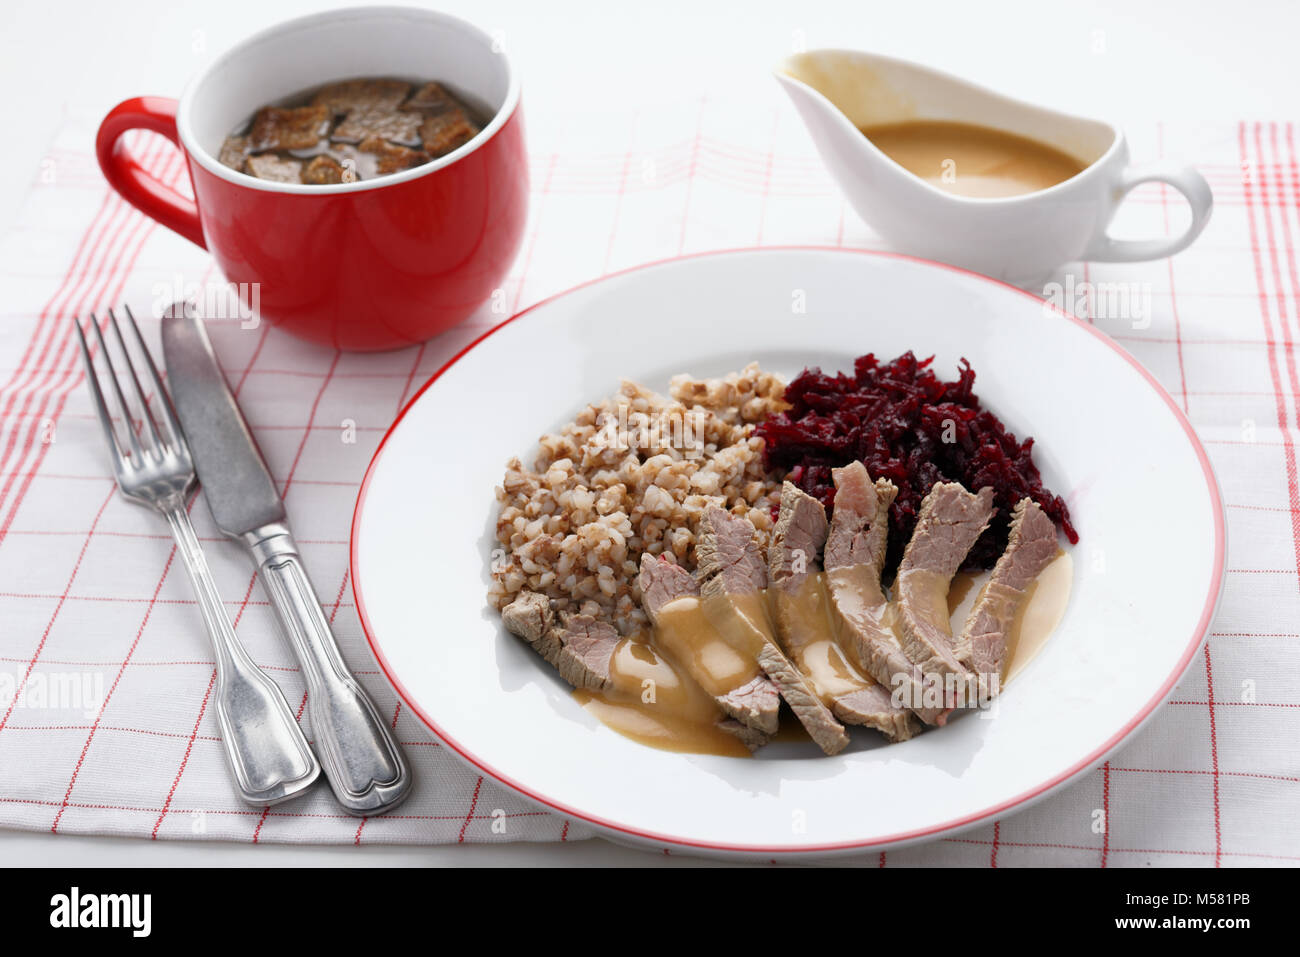 Boiled beef meat with buckwheat porridge, beetroot salad, and beef broth - Stock Image